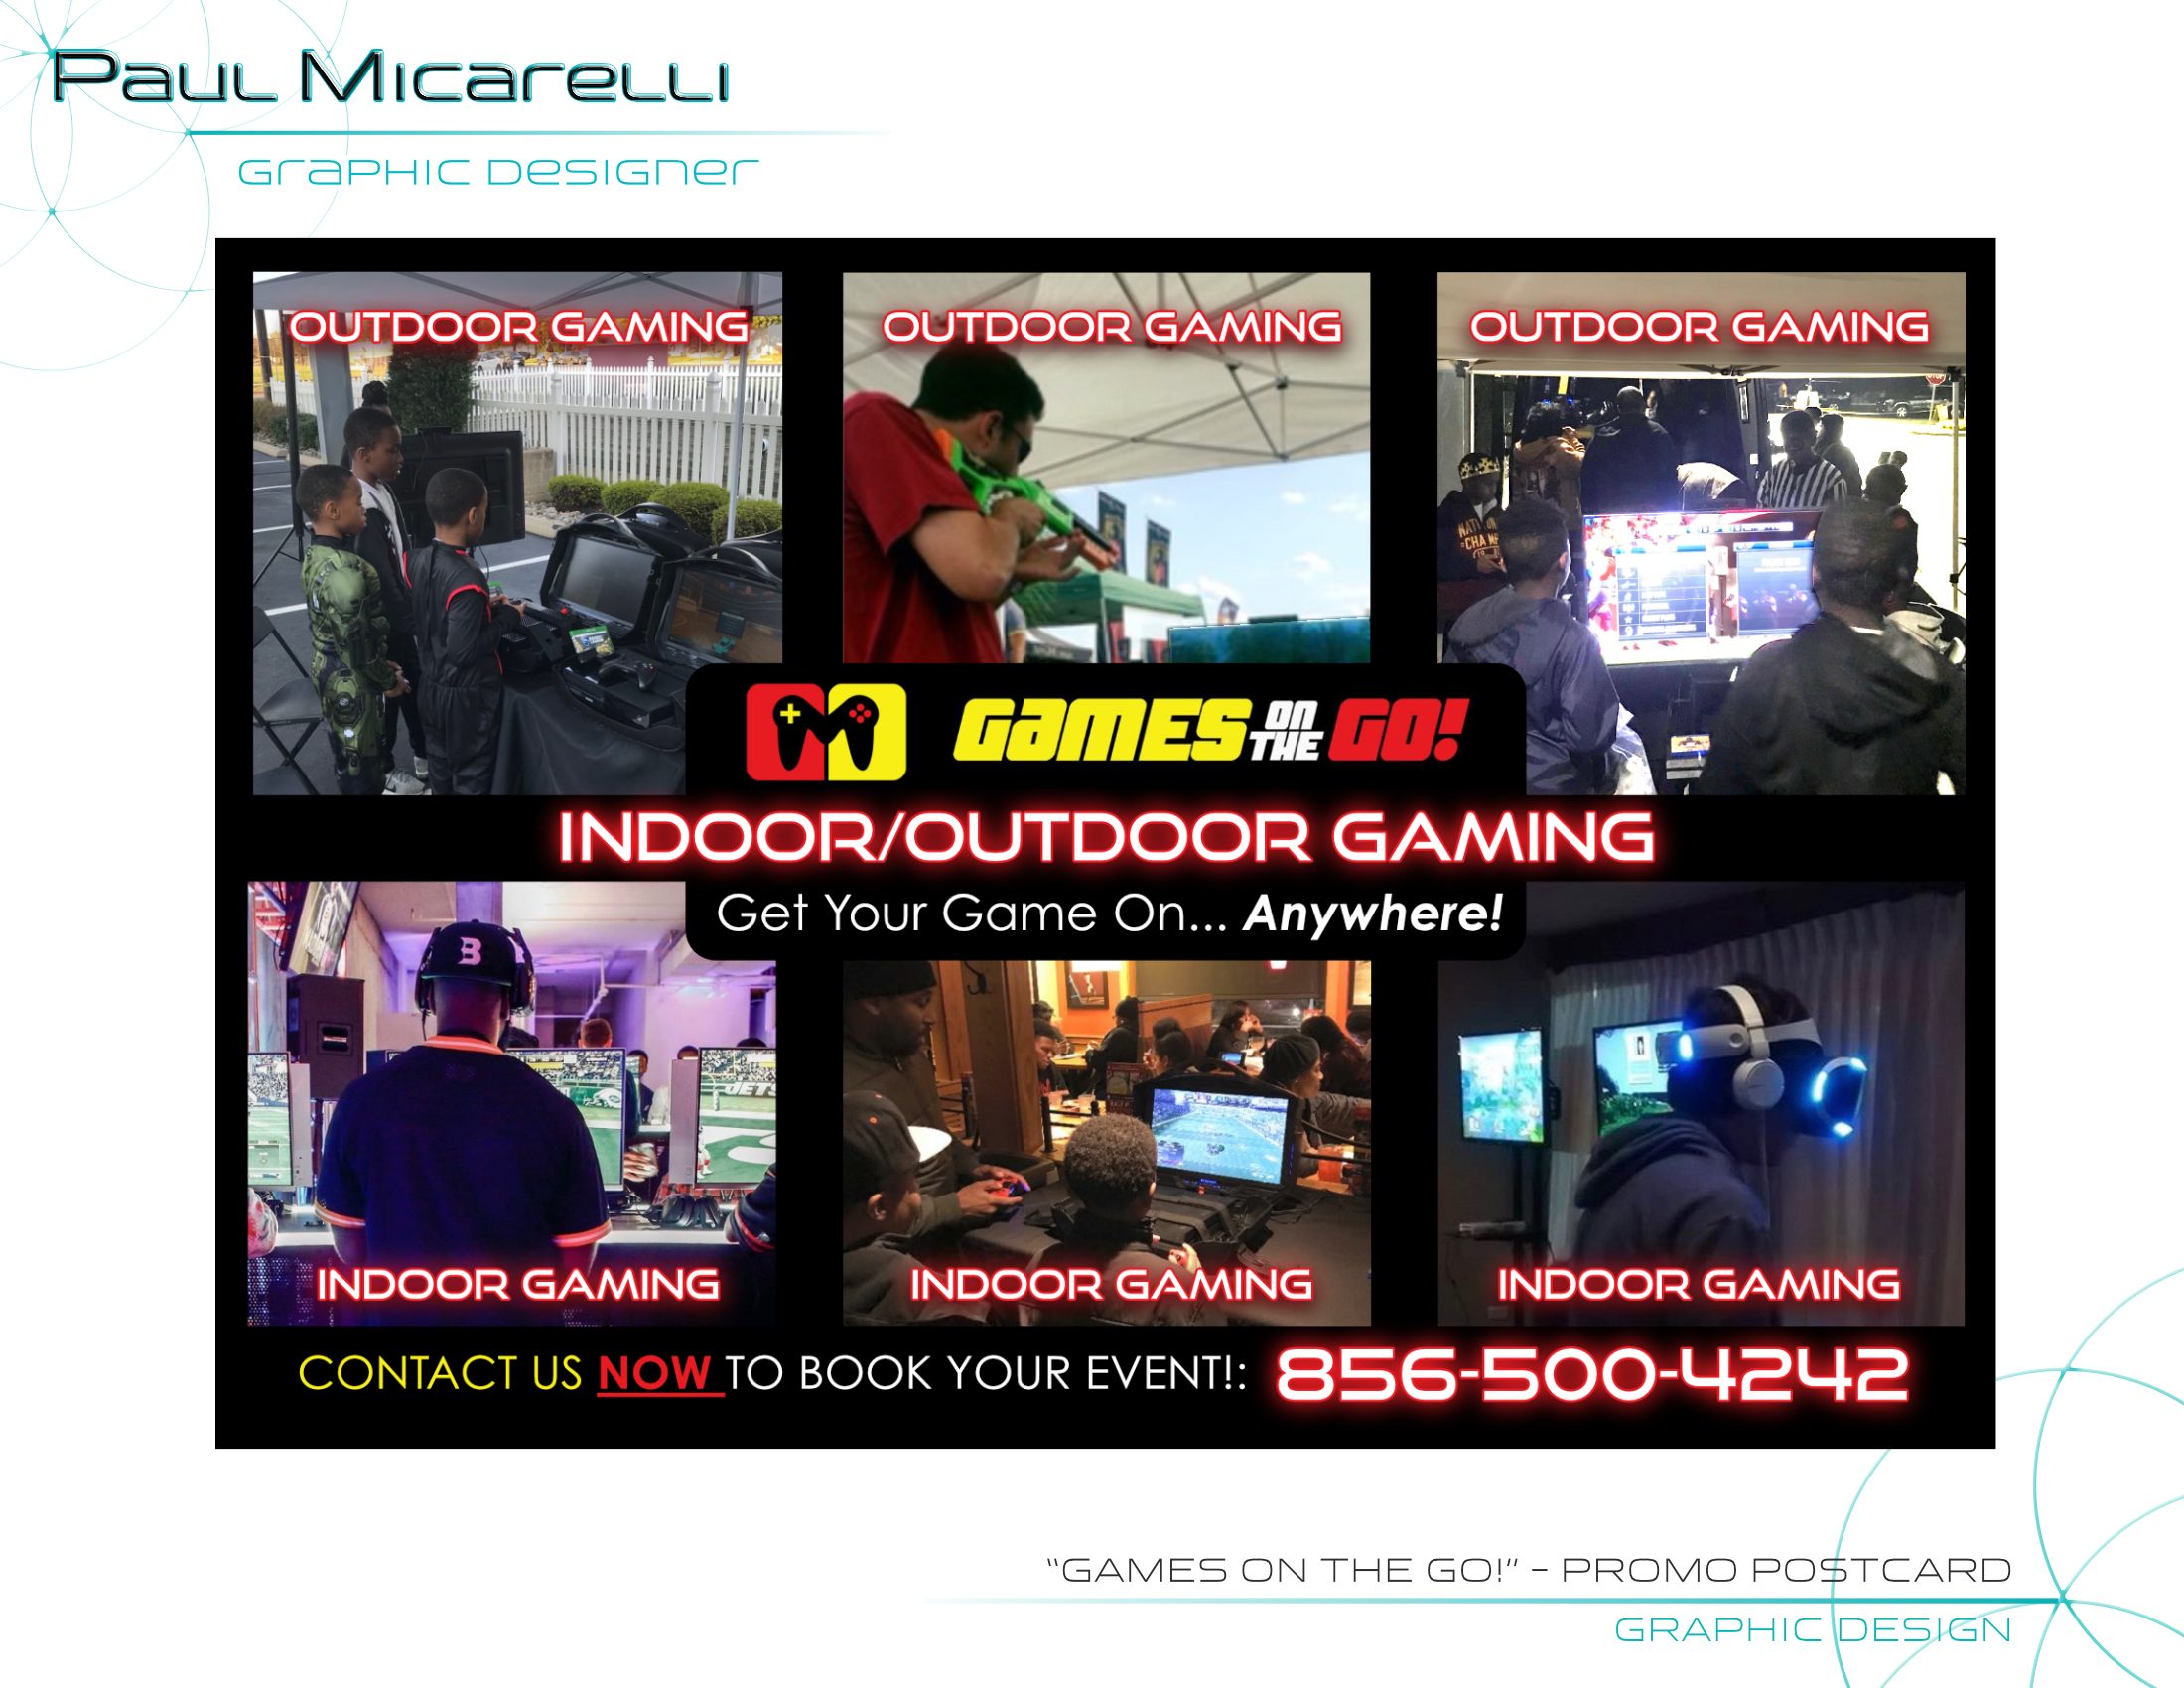 Paul-Micarelli-Games on the Go-Indoor Ou